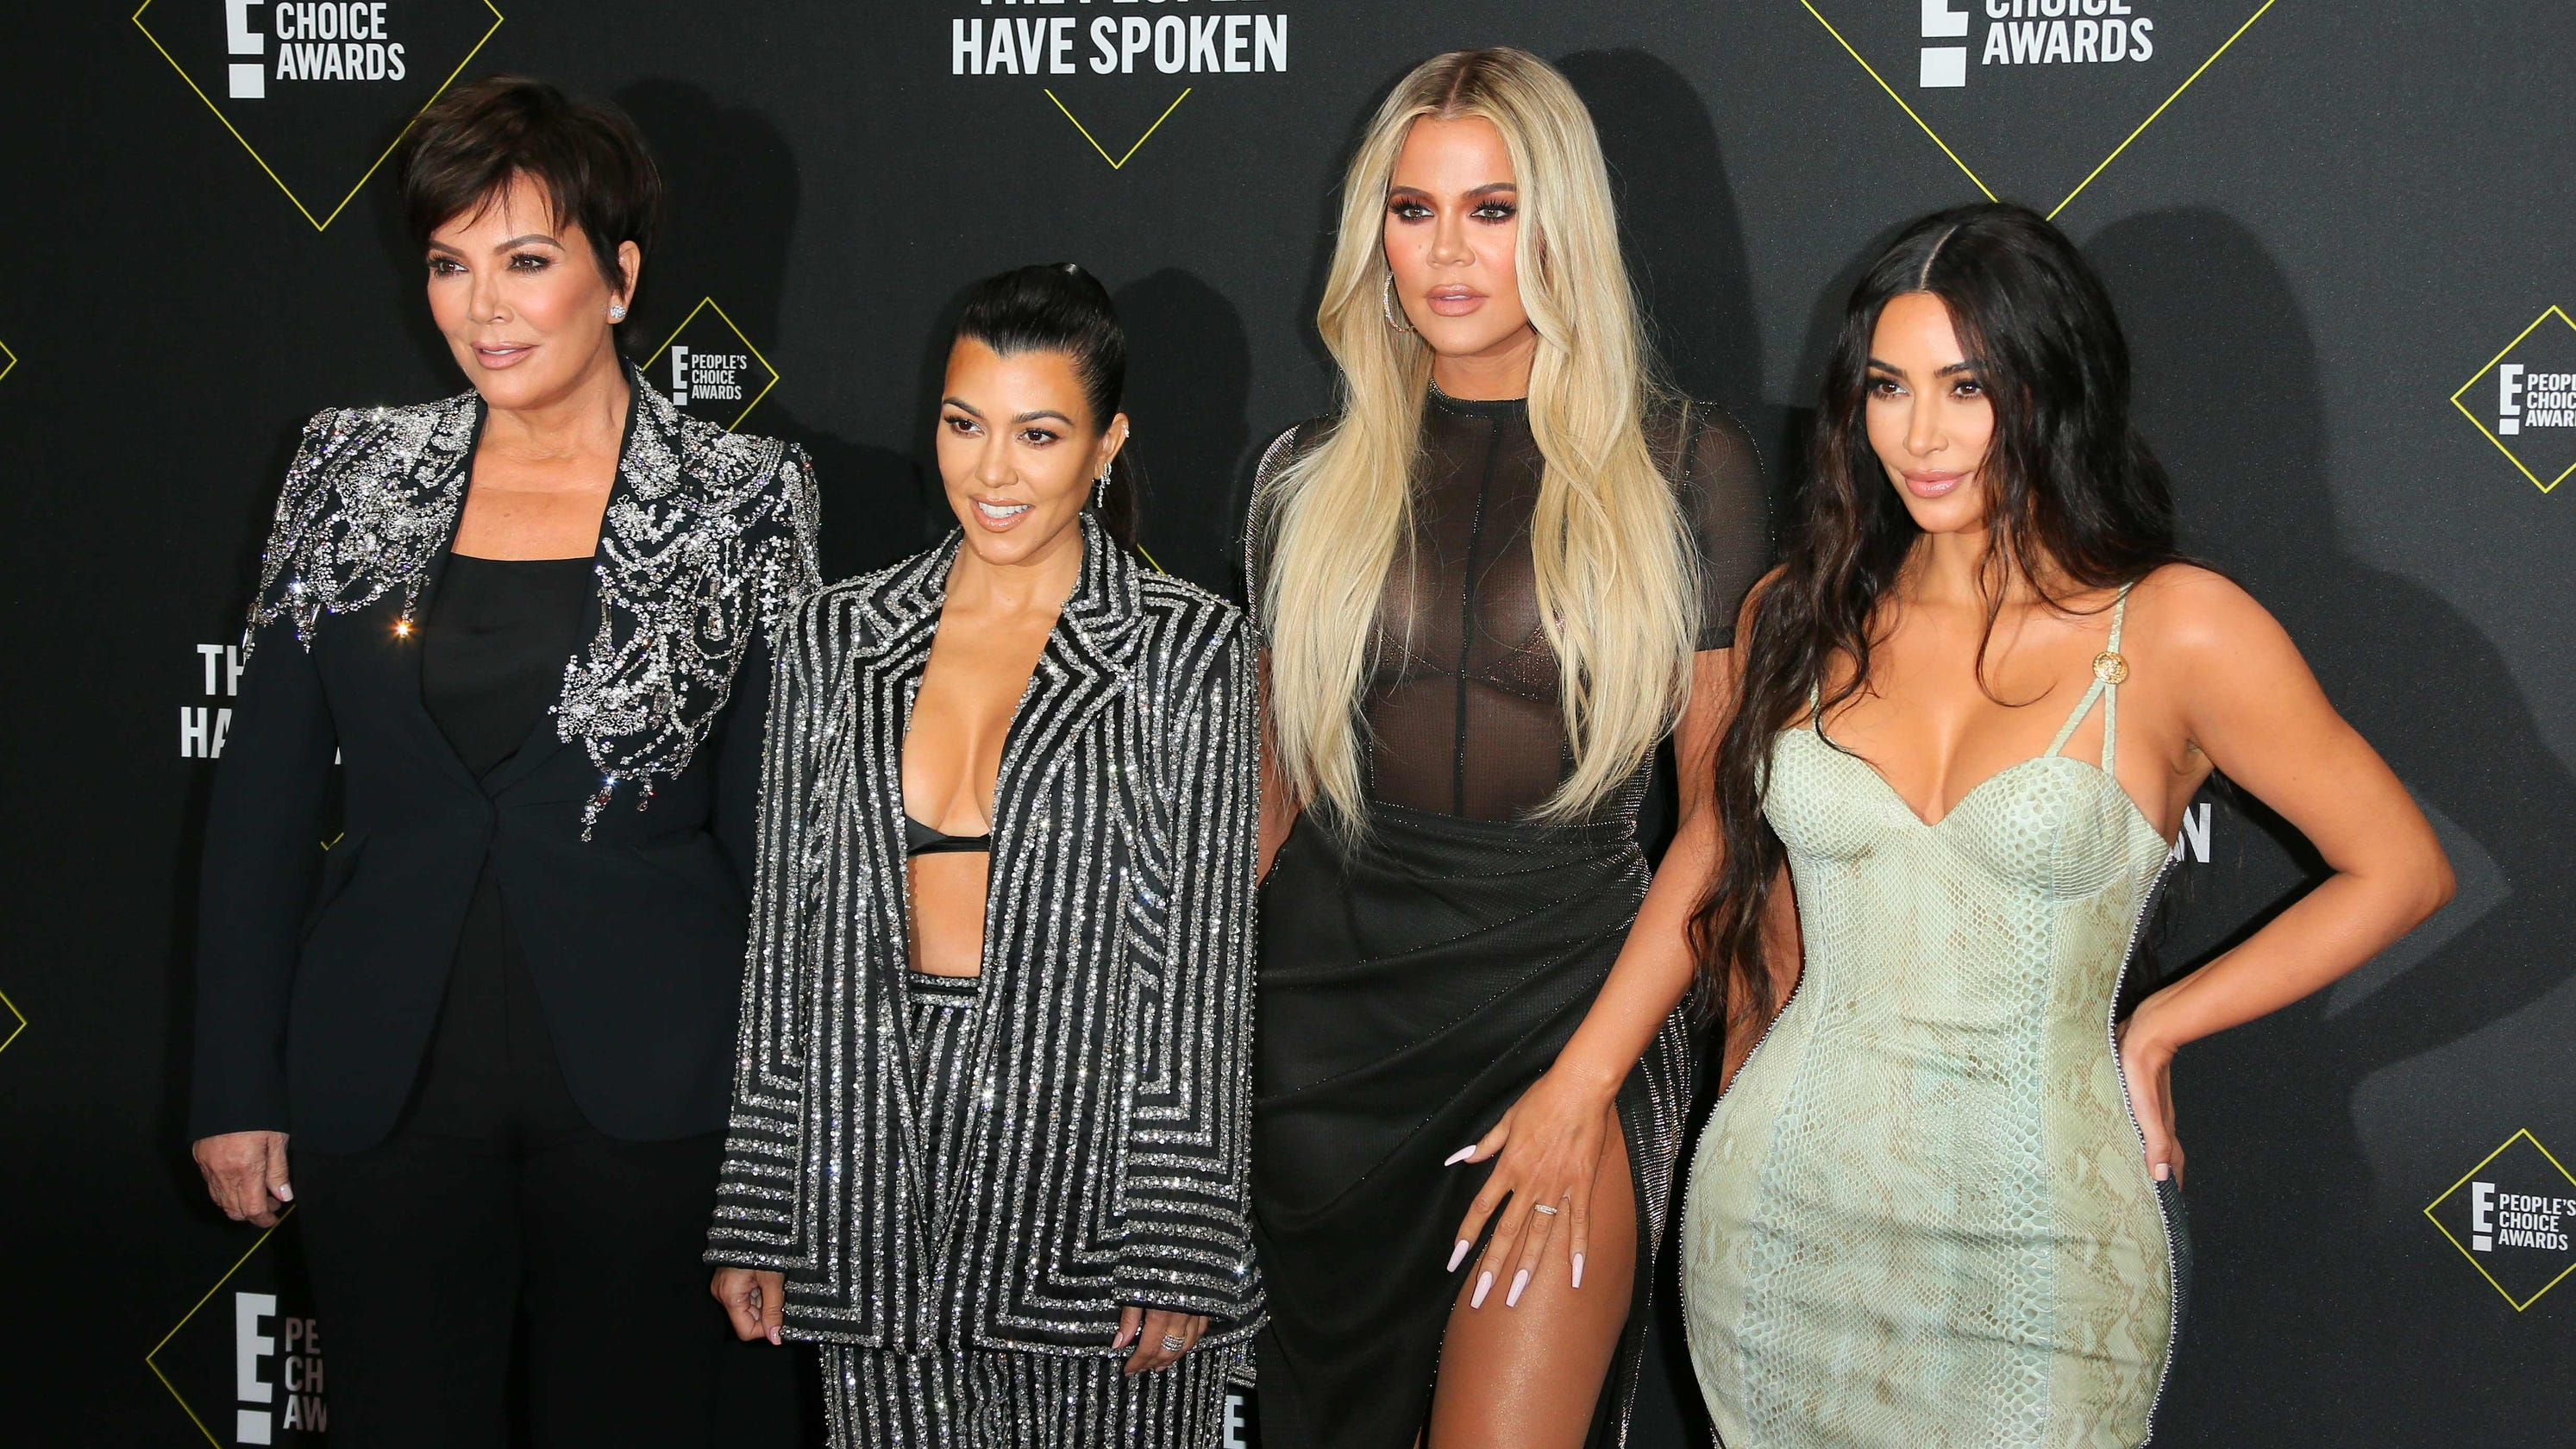 'Keeping Up' reunion revelations: Explosive fights nearly cut, where Kim and Kanye stand today